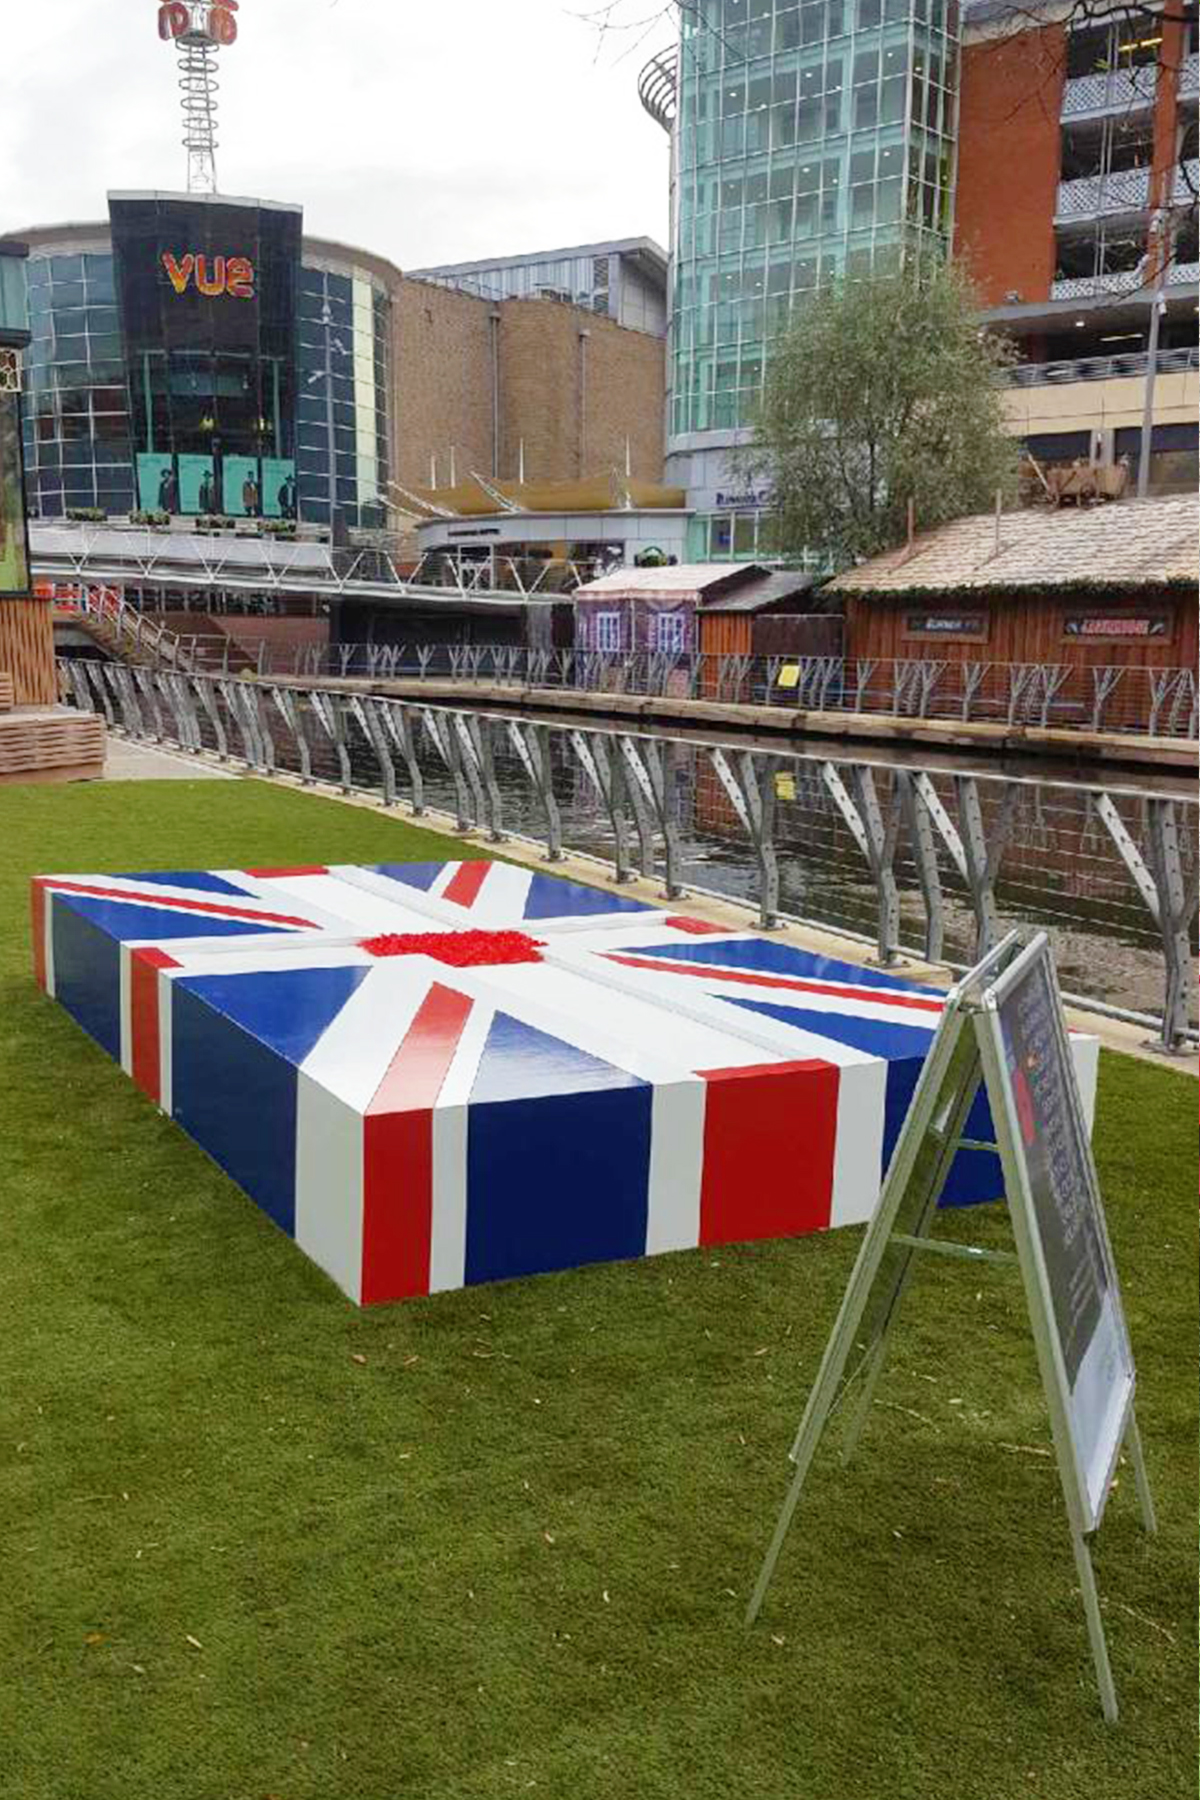 An interactive union jack PR stunt installation allowing members of the public to pay their respects by filling in the middle section of the flag with poppies